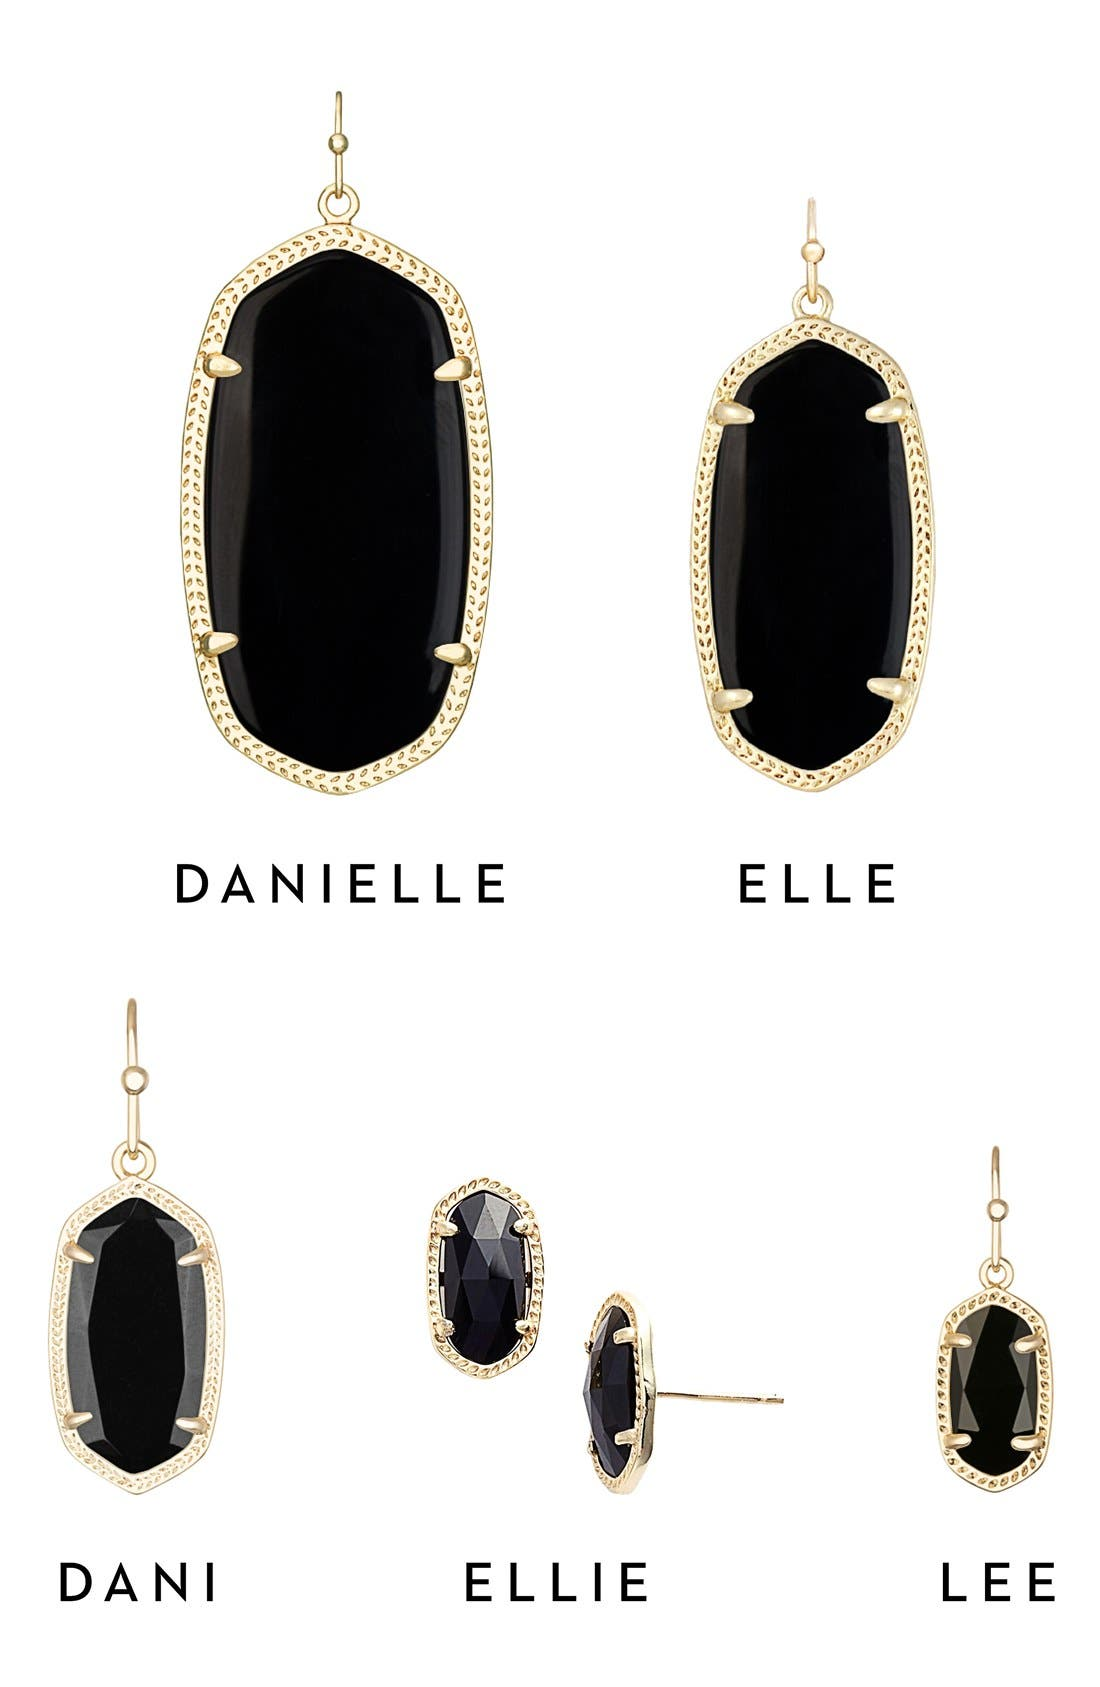 Danielle - Large Oval Statement Earrings,                             Alternate thumbnail 7, color,                             001